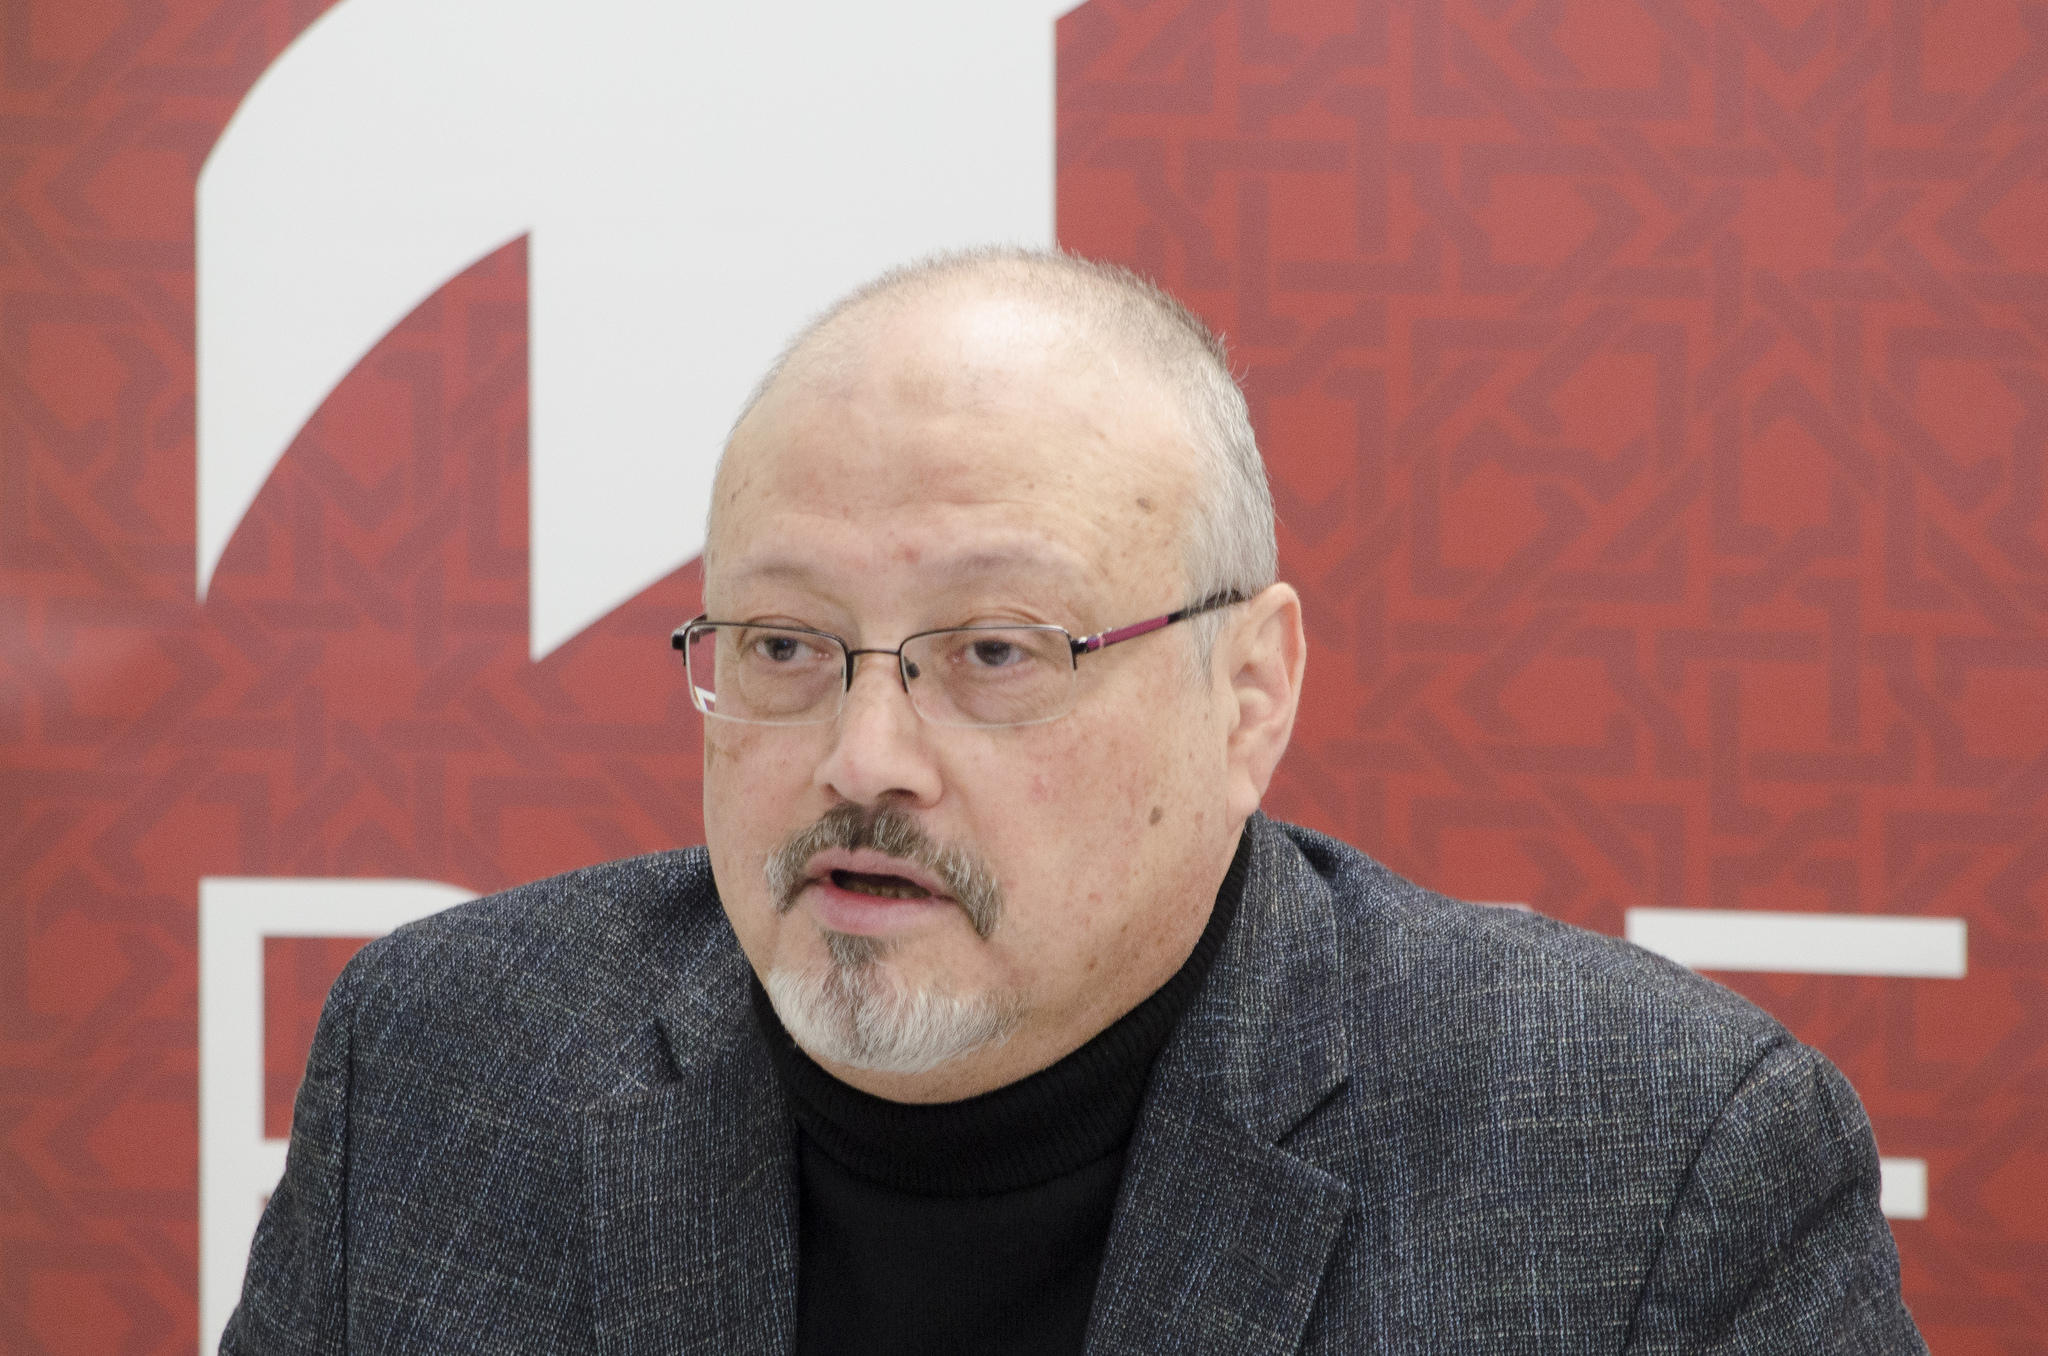 Jamal Khashoggi speaking at a Project on Middle East Democracy event in Washington D.C. in March